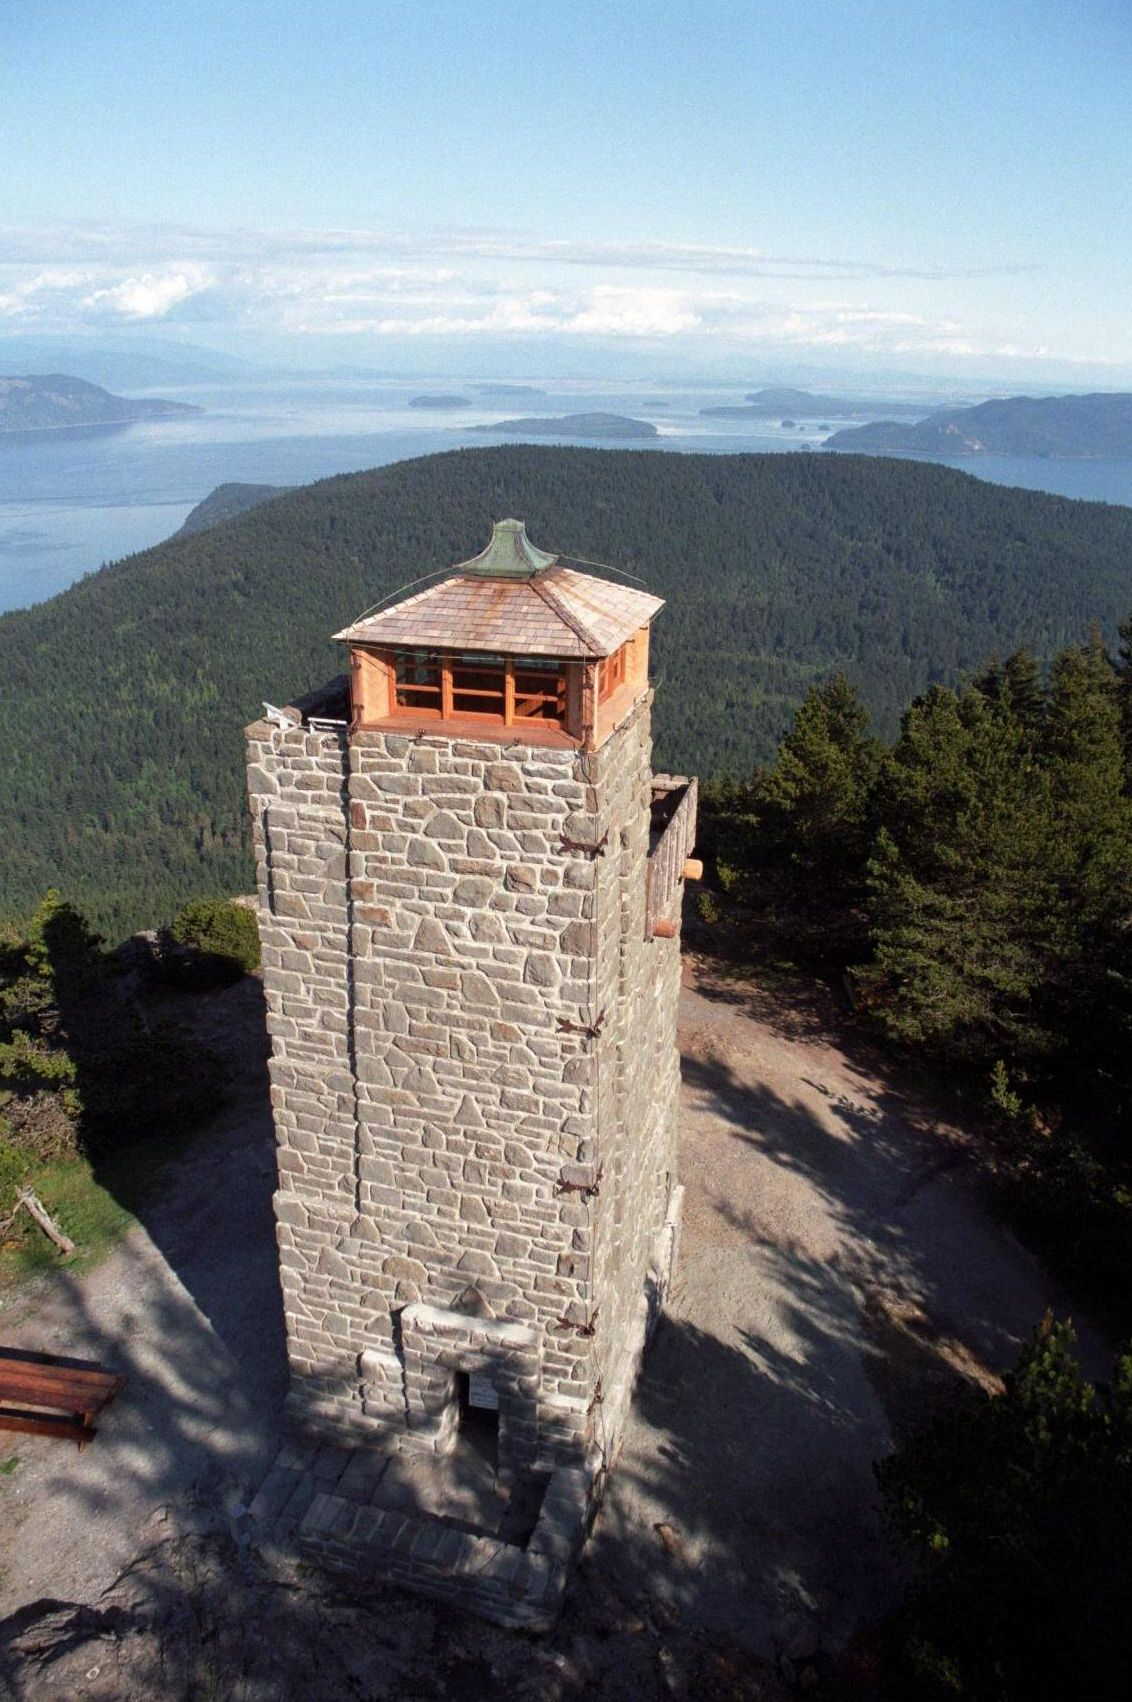 Tower on Mt. Constitution, Orcas Island, Photography by Rolf Erickson